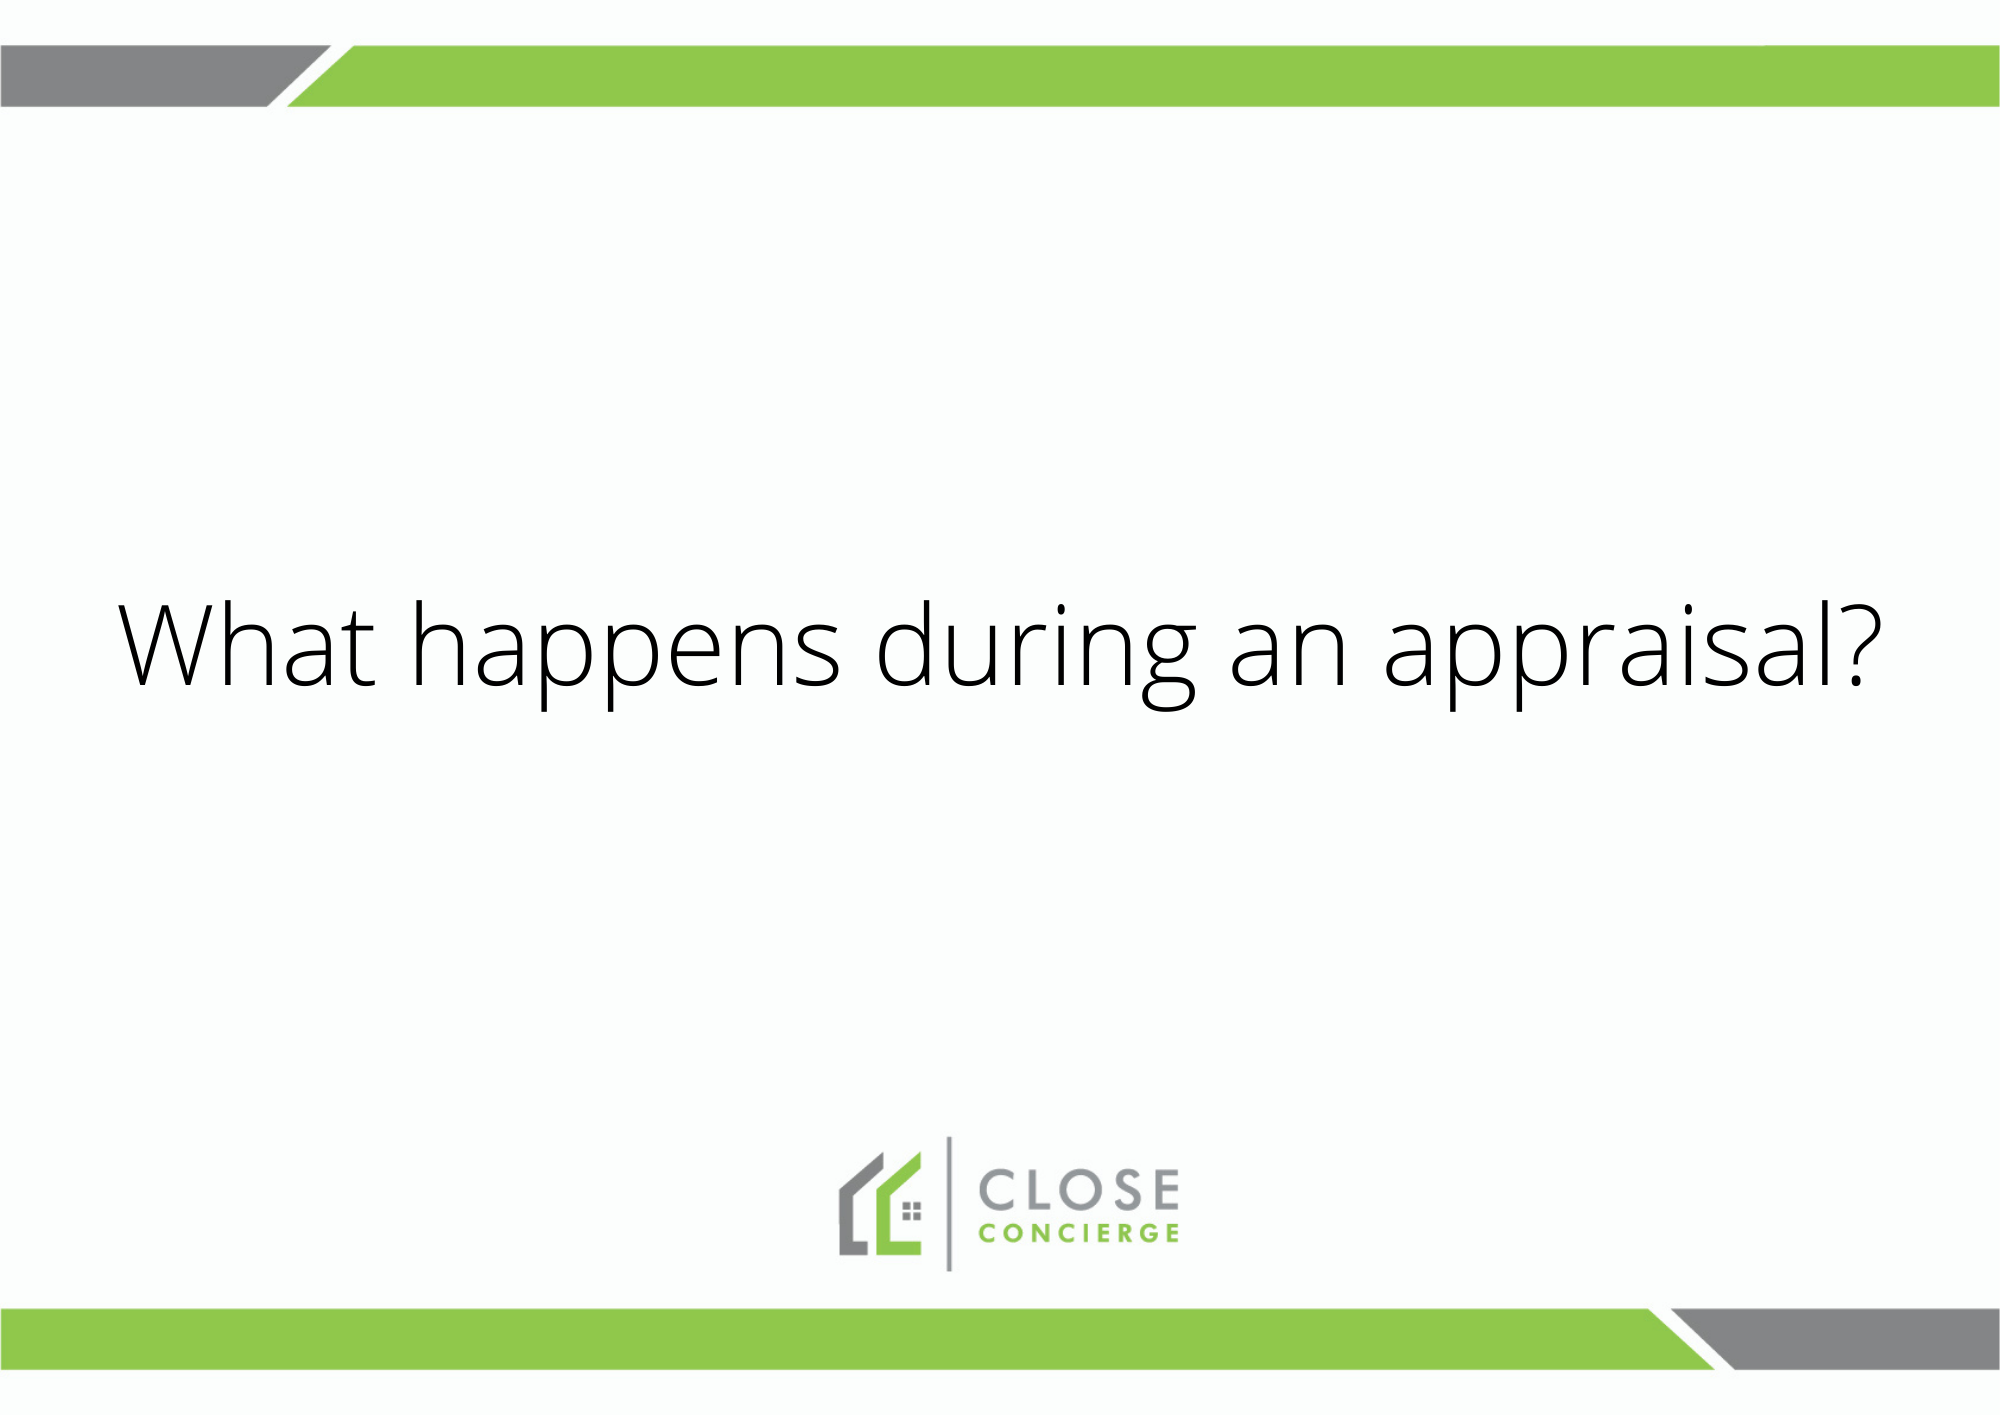 What happens during an appraisal?